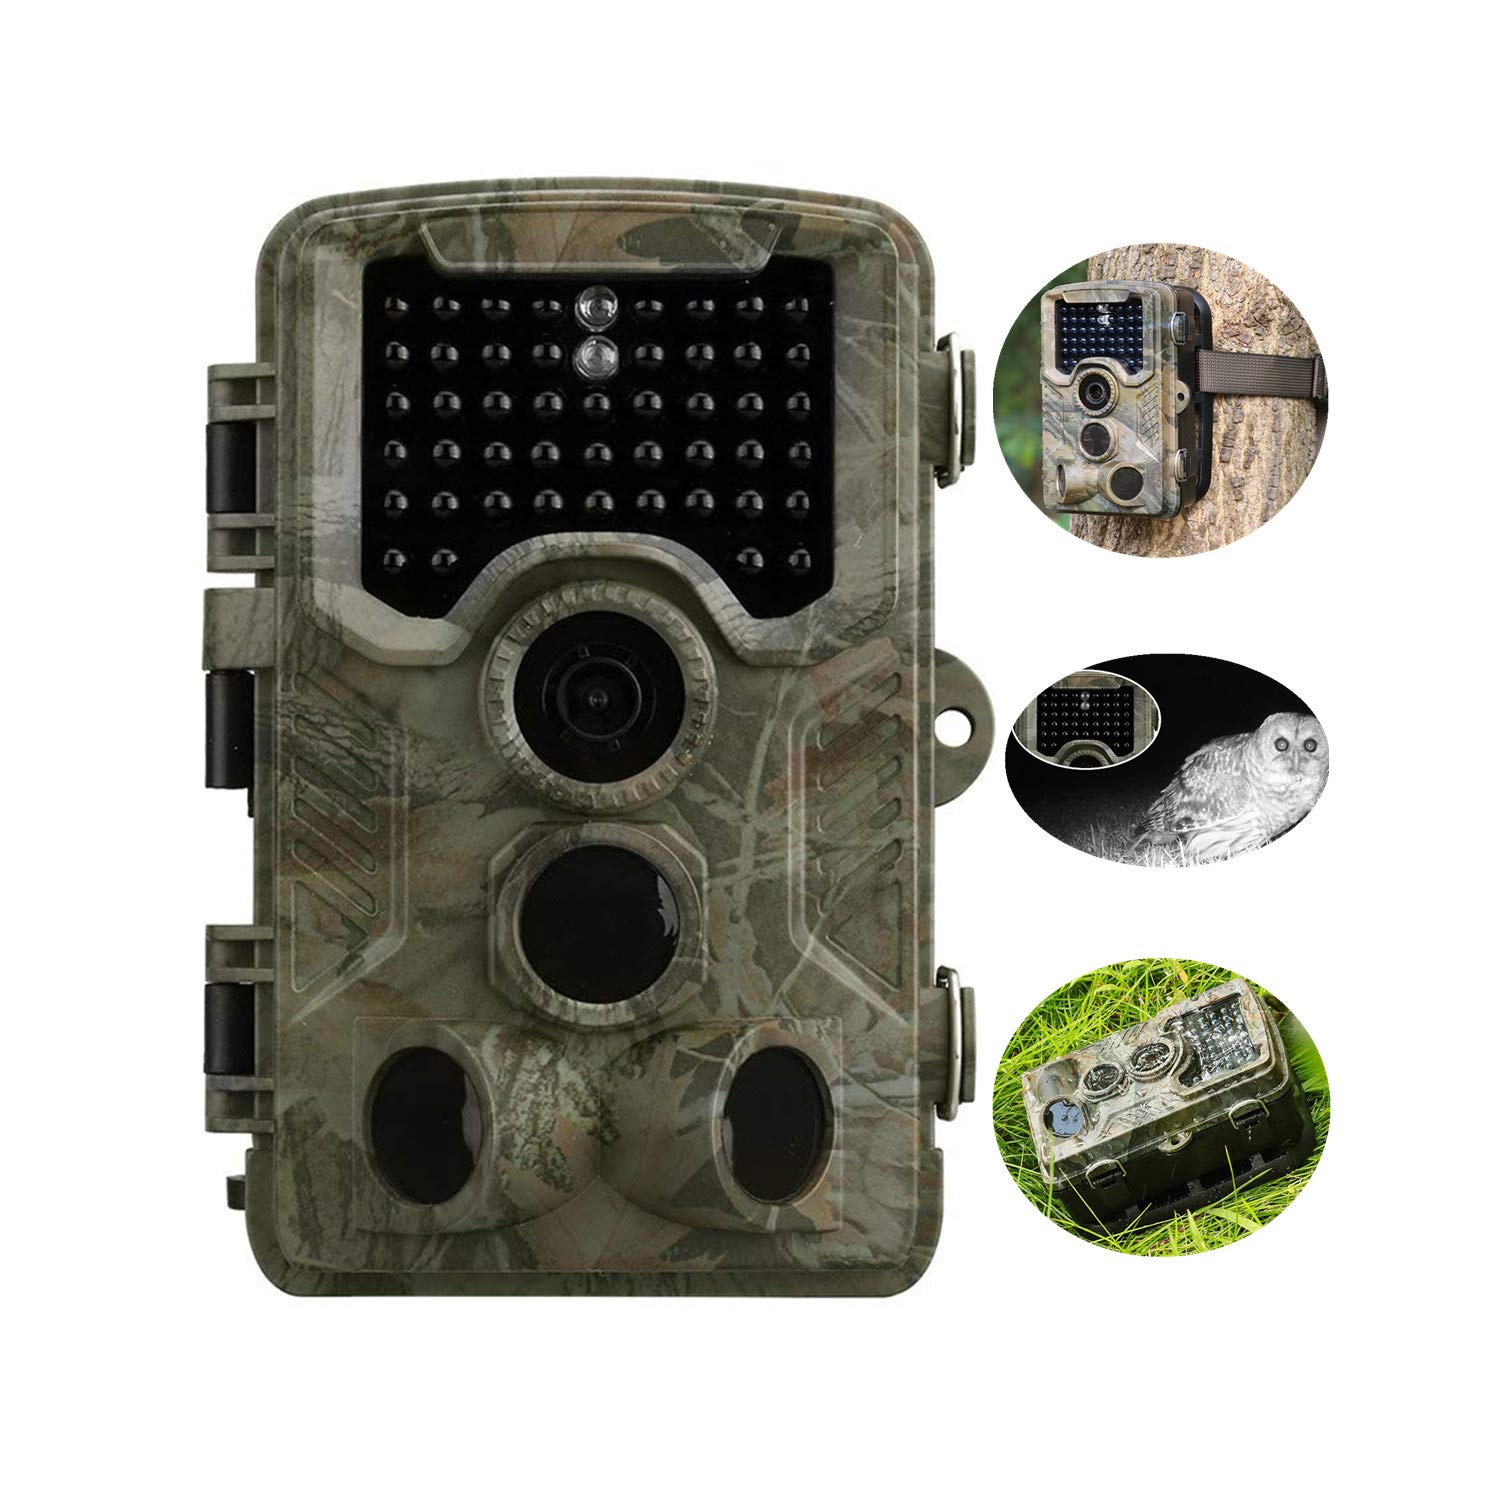 Trail Camera 1080P 12MP Wildlife Camera Motion Activated Night Vision 20m with 2.4'' LCD Display IP56 Waterproof Design for Wildlife Hunting and Home Security by MPNETDEAL by MPNETDEAL